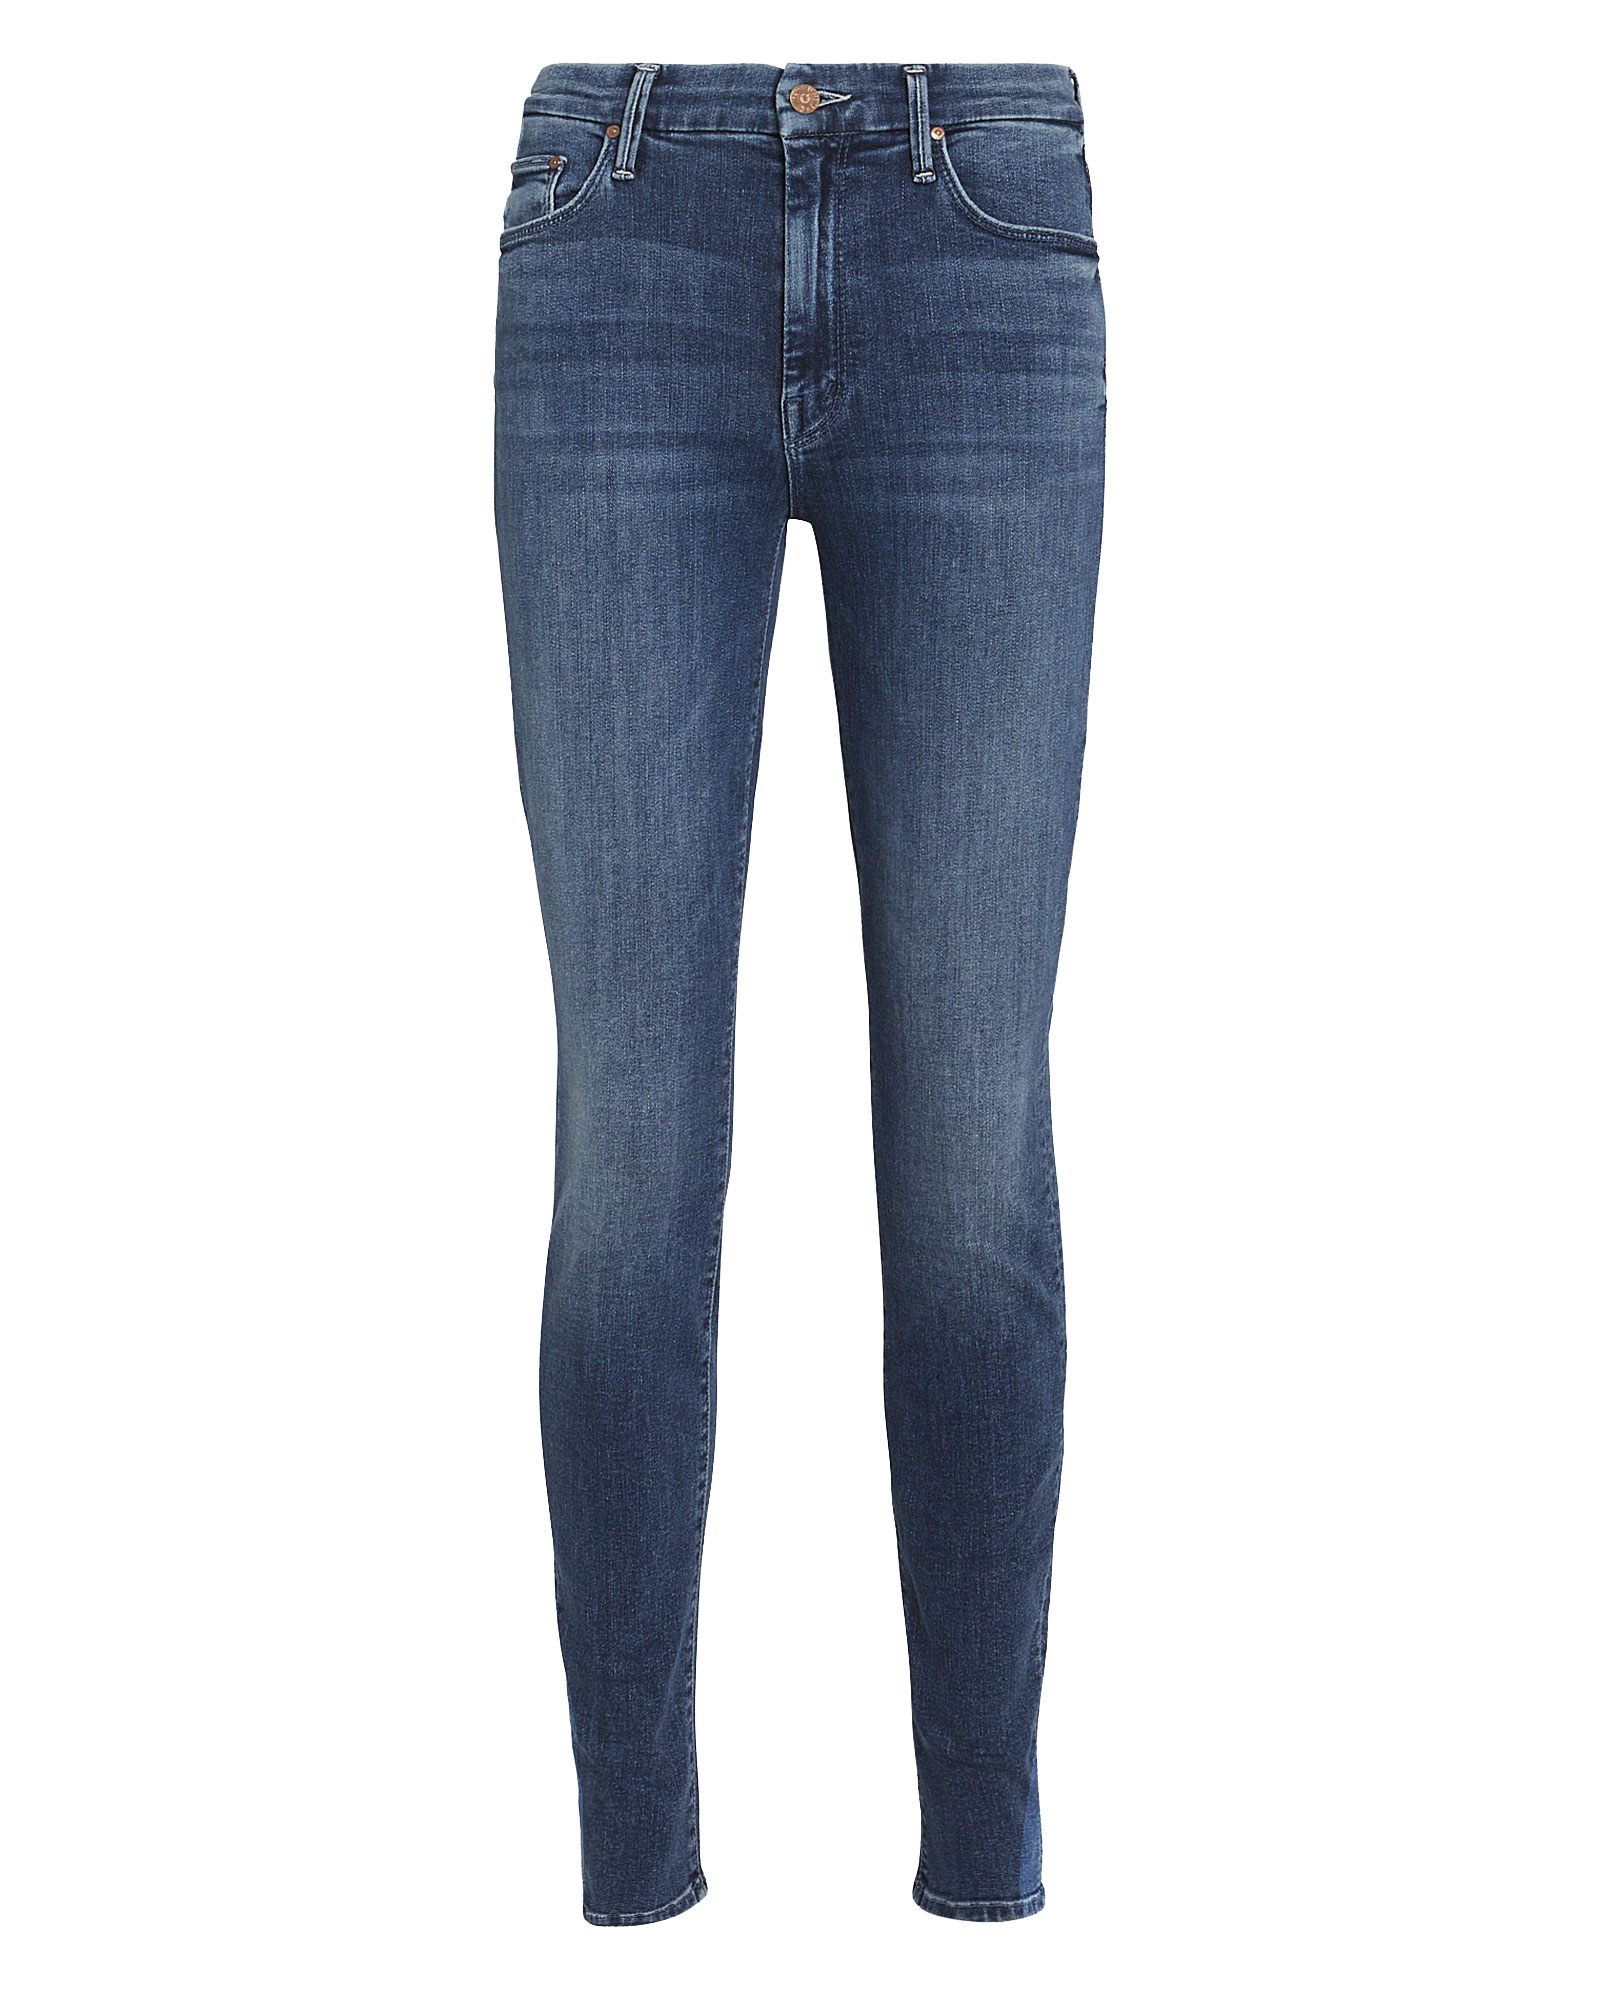 The Looker Skinny Jeans The Looker Skinny Jeans by Mothermother